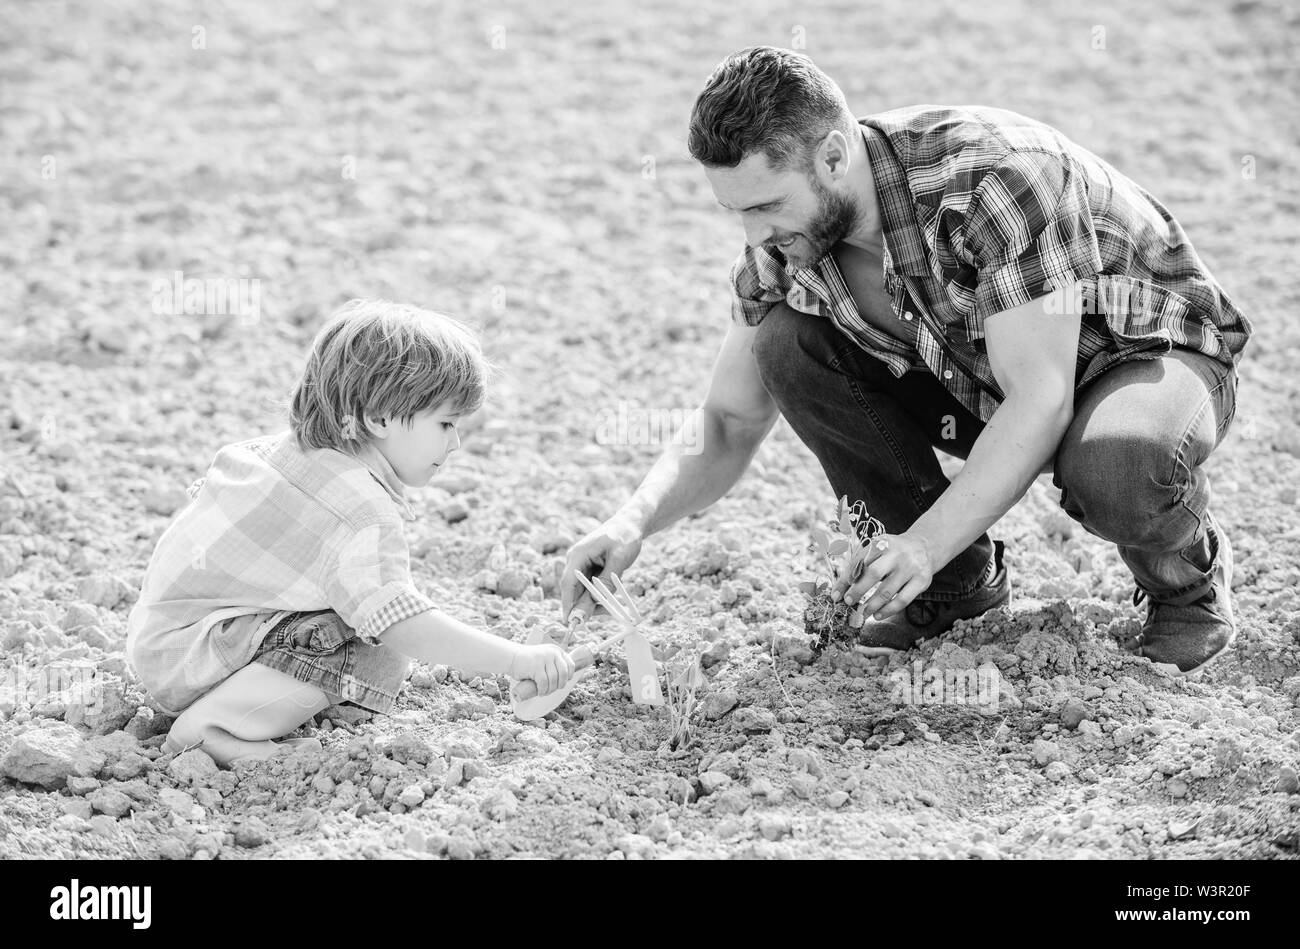 small boy child help father in farming. rich natural soil. Eco farm. father and son planting flowers in ground. new life. soils fertilizers. happy ear - Stock Image